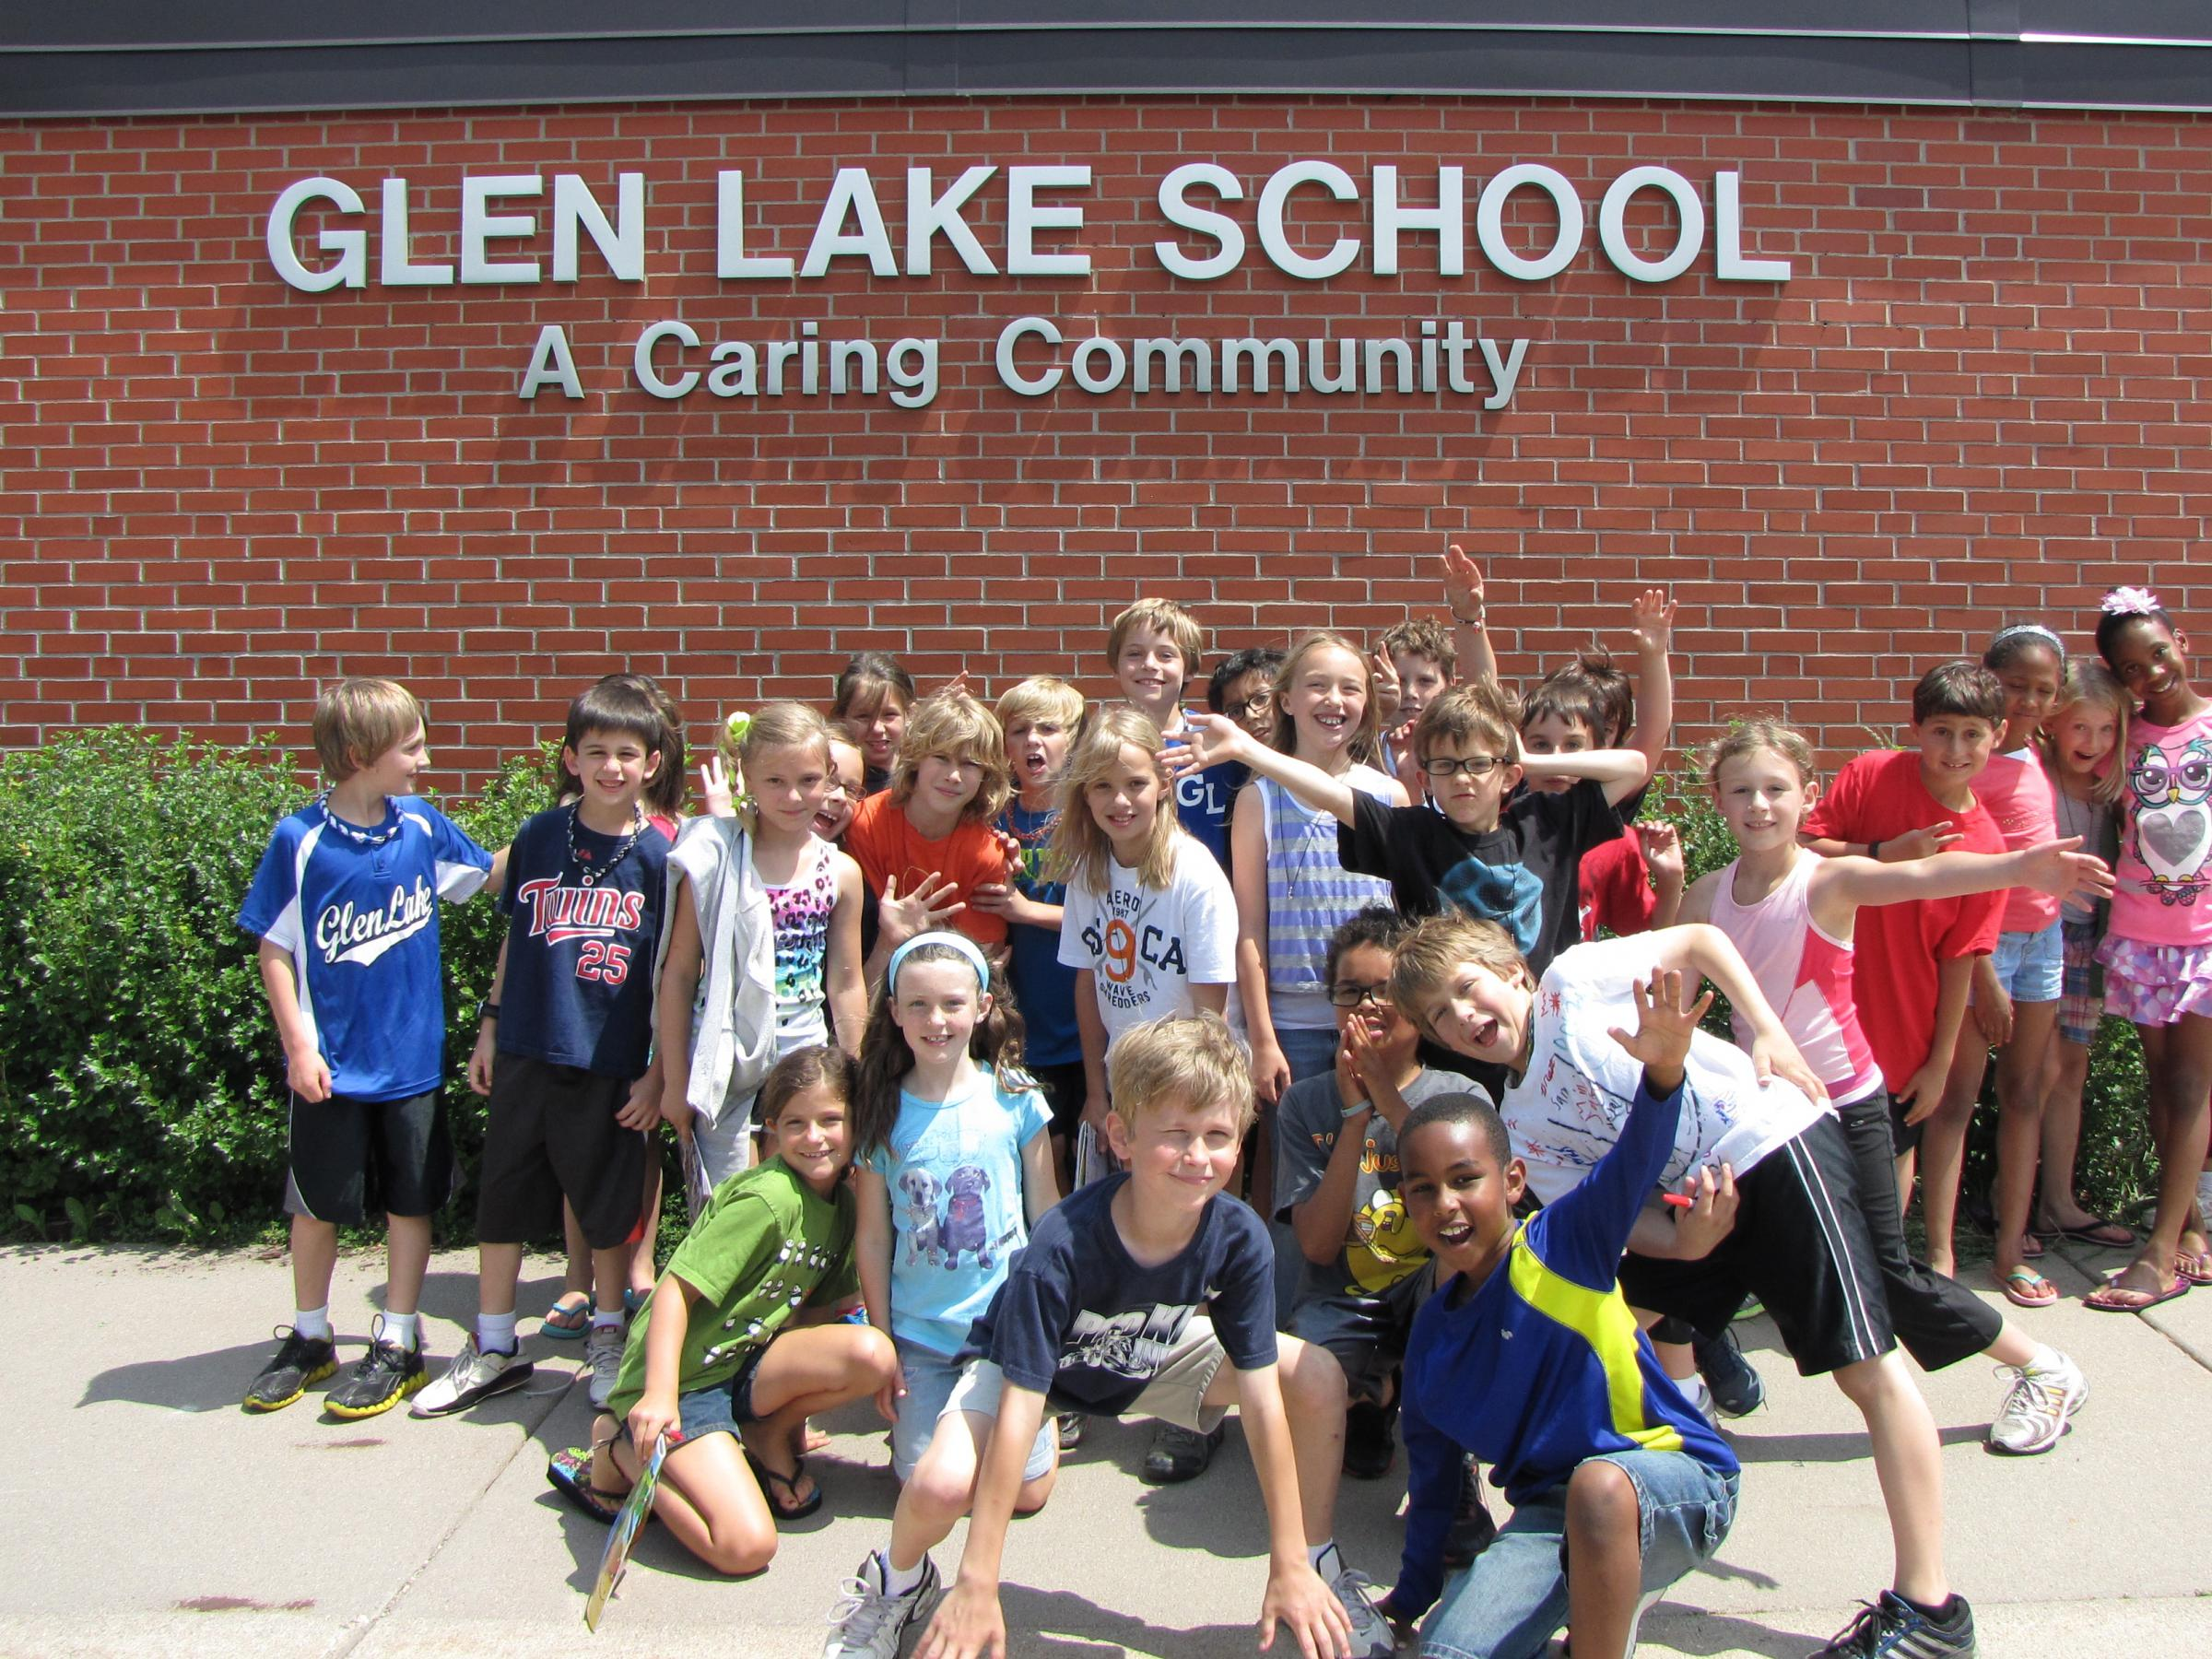 kids pose in front of Glen Lake School building